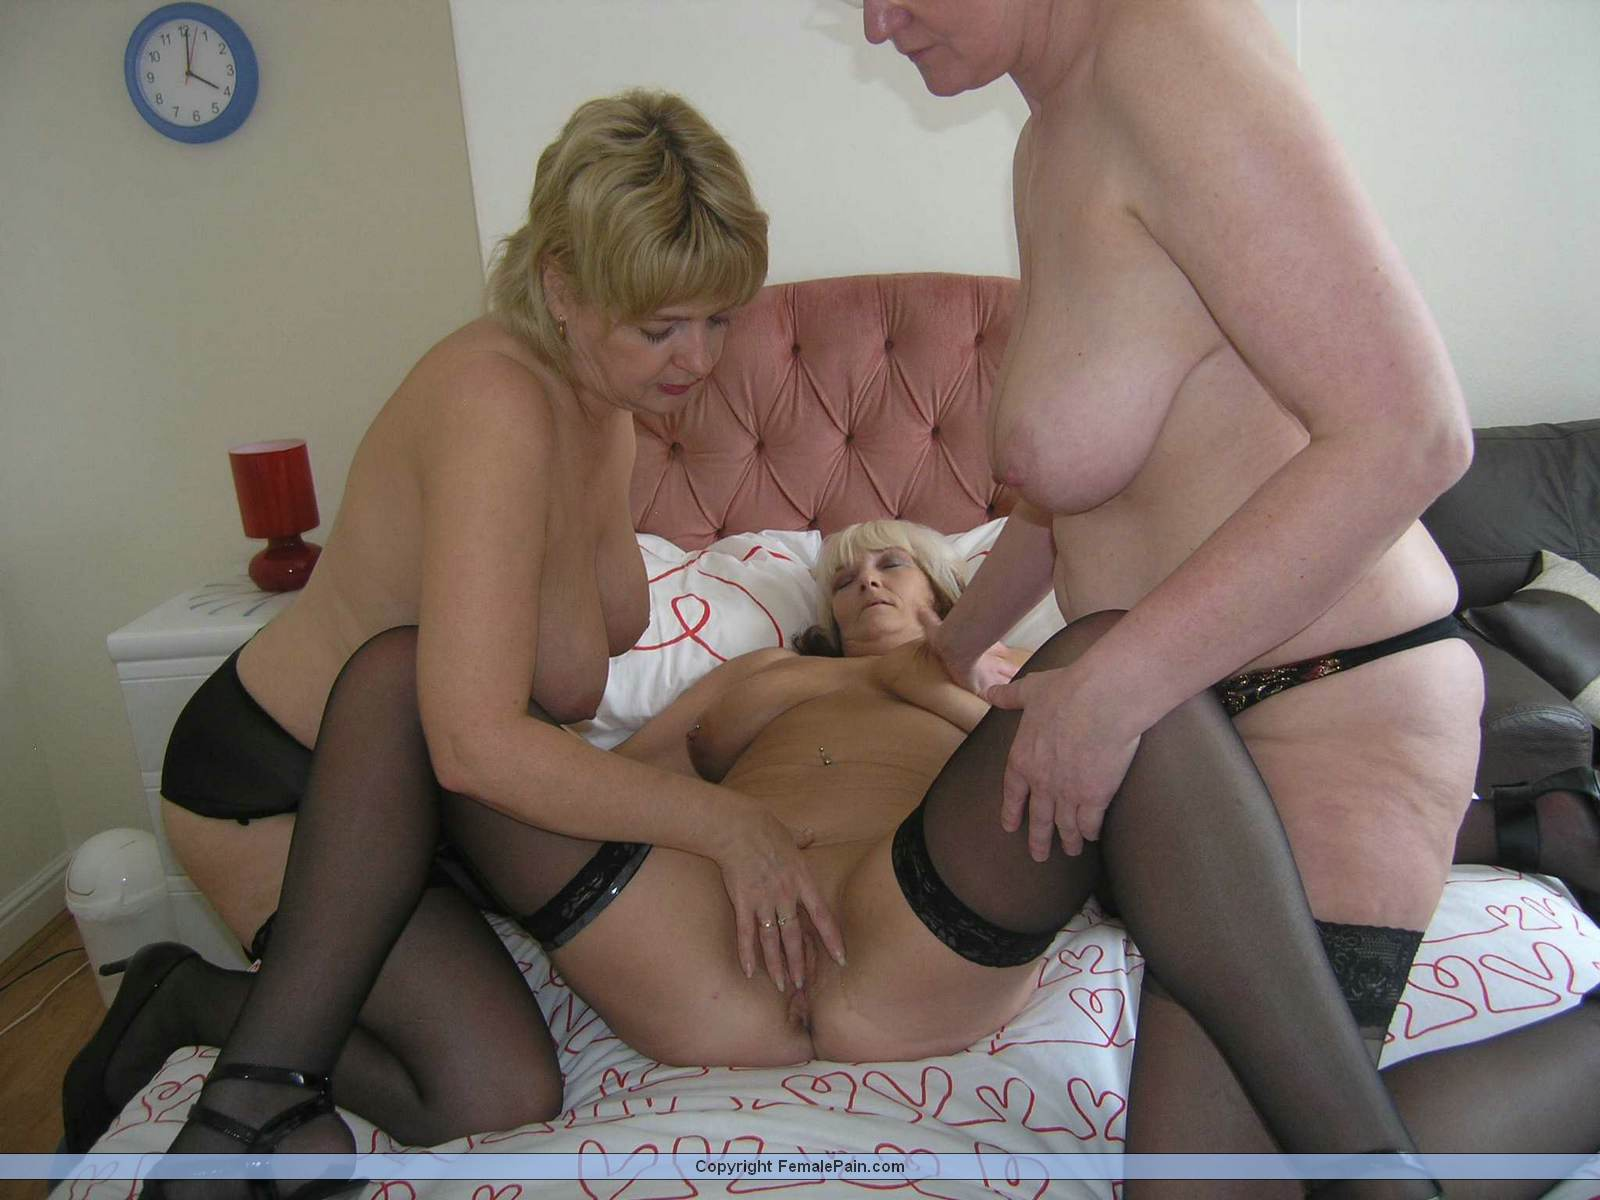 Mom and babby sitter porn